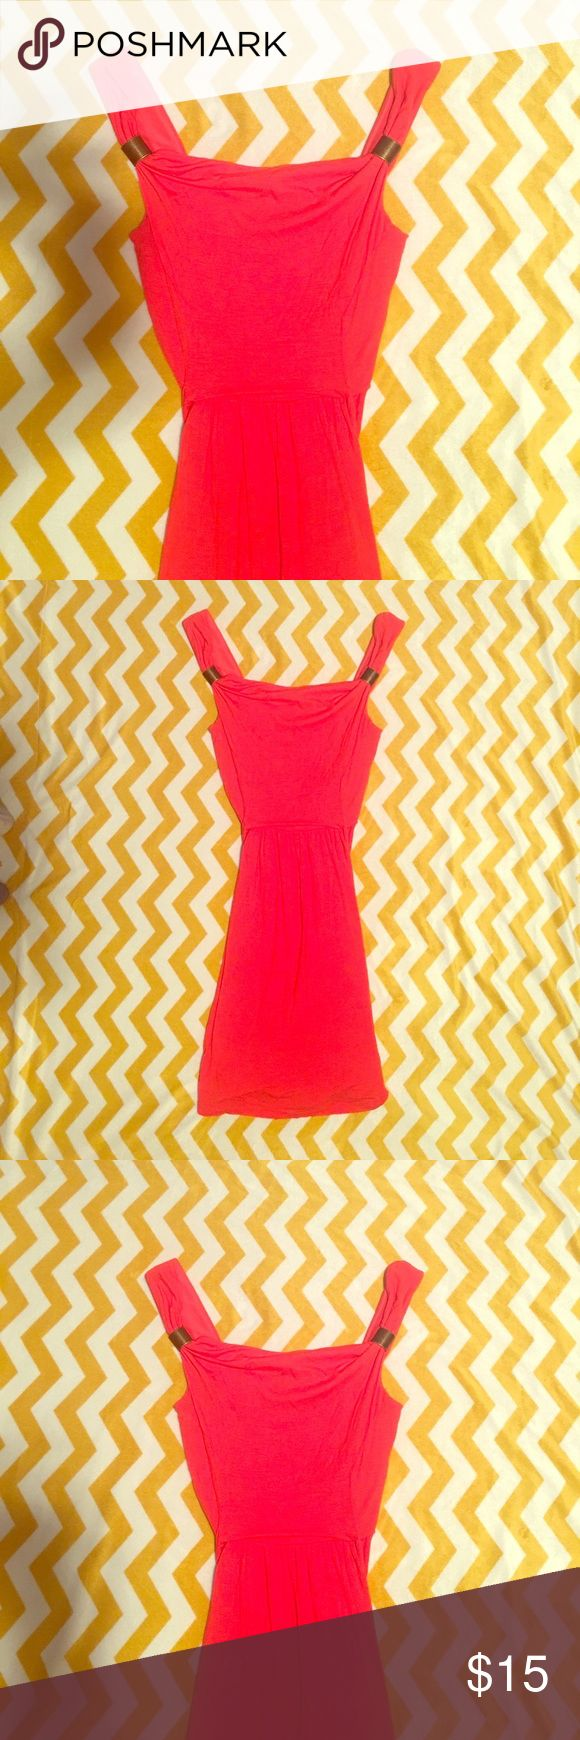 Coral summer dress Above the knee coral dress perfect for summer, ties in back and has gold/bronze strap detail Dresses Mini